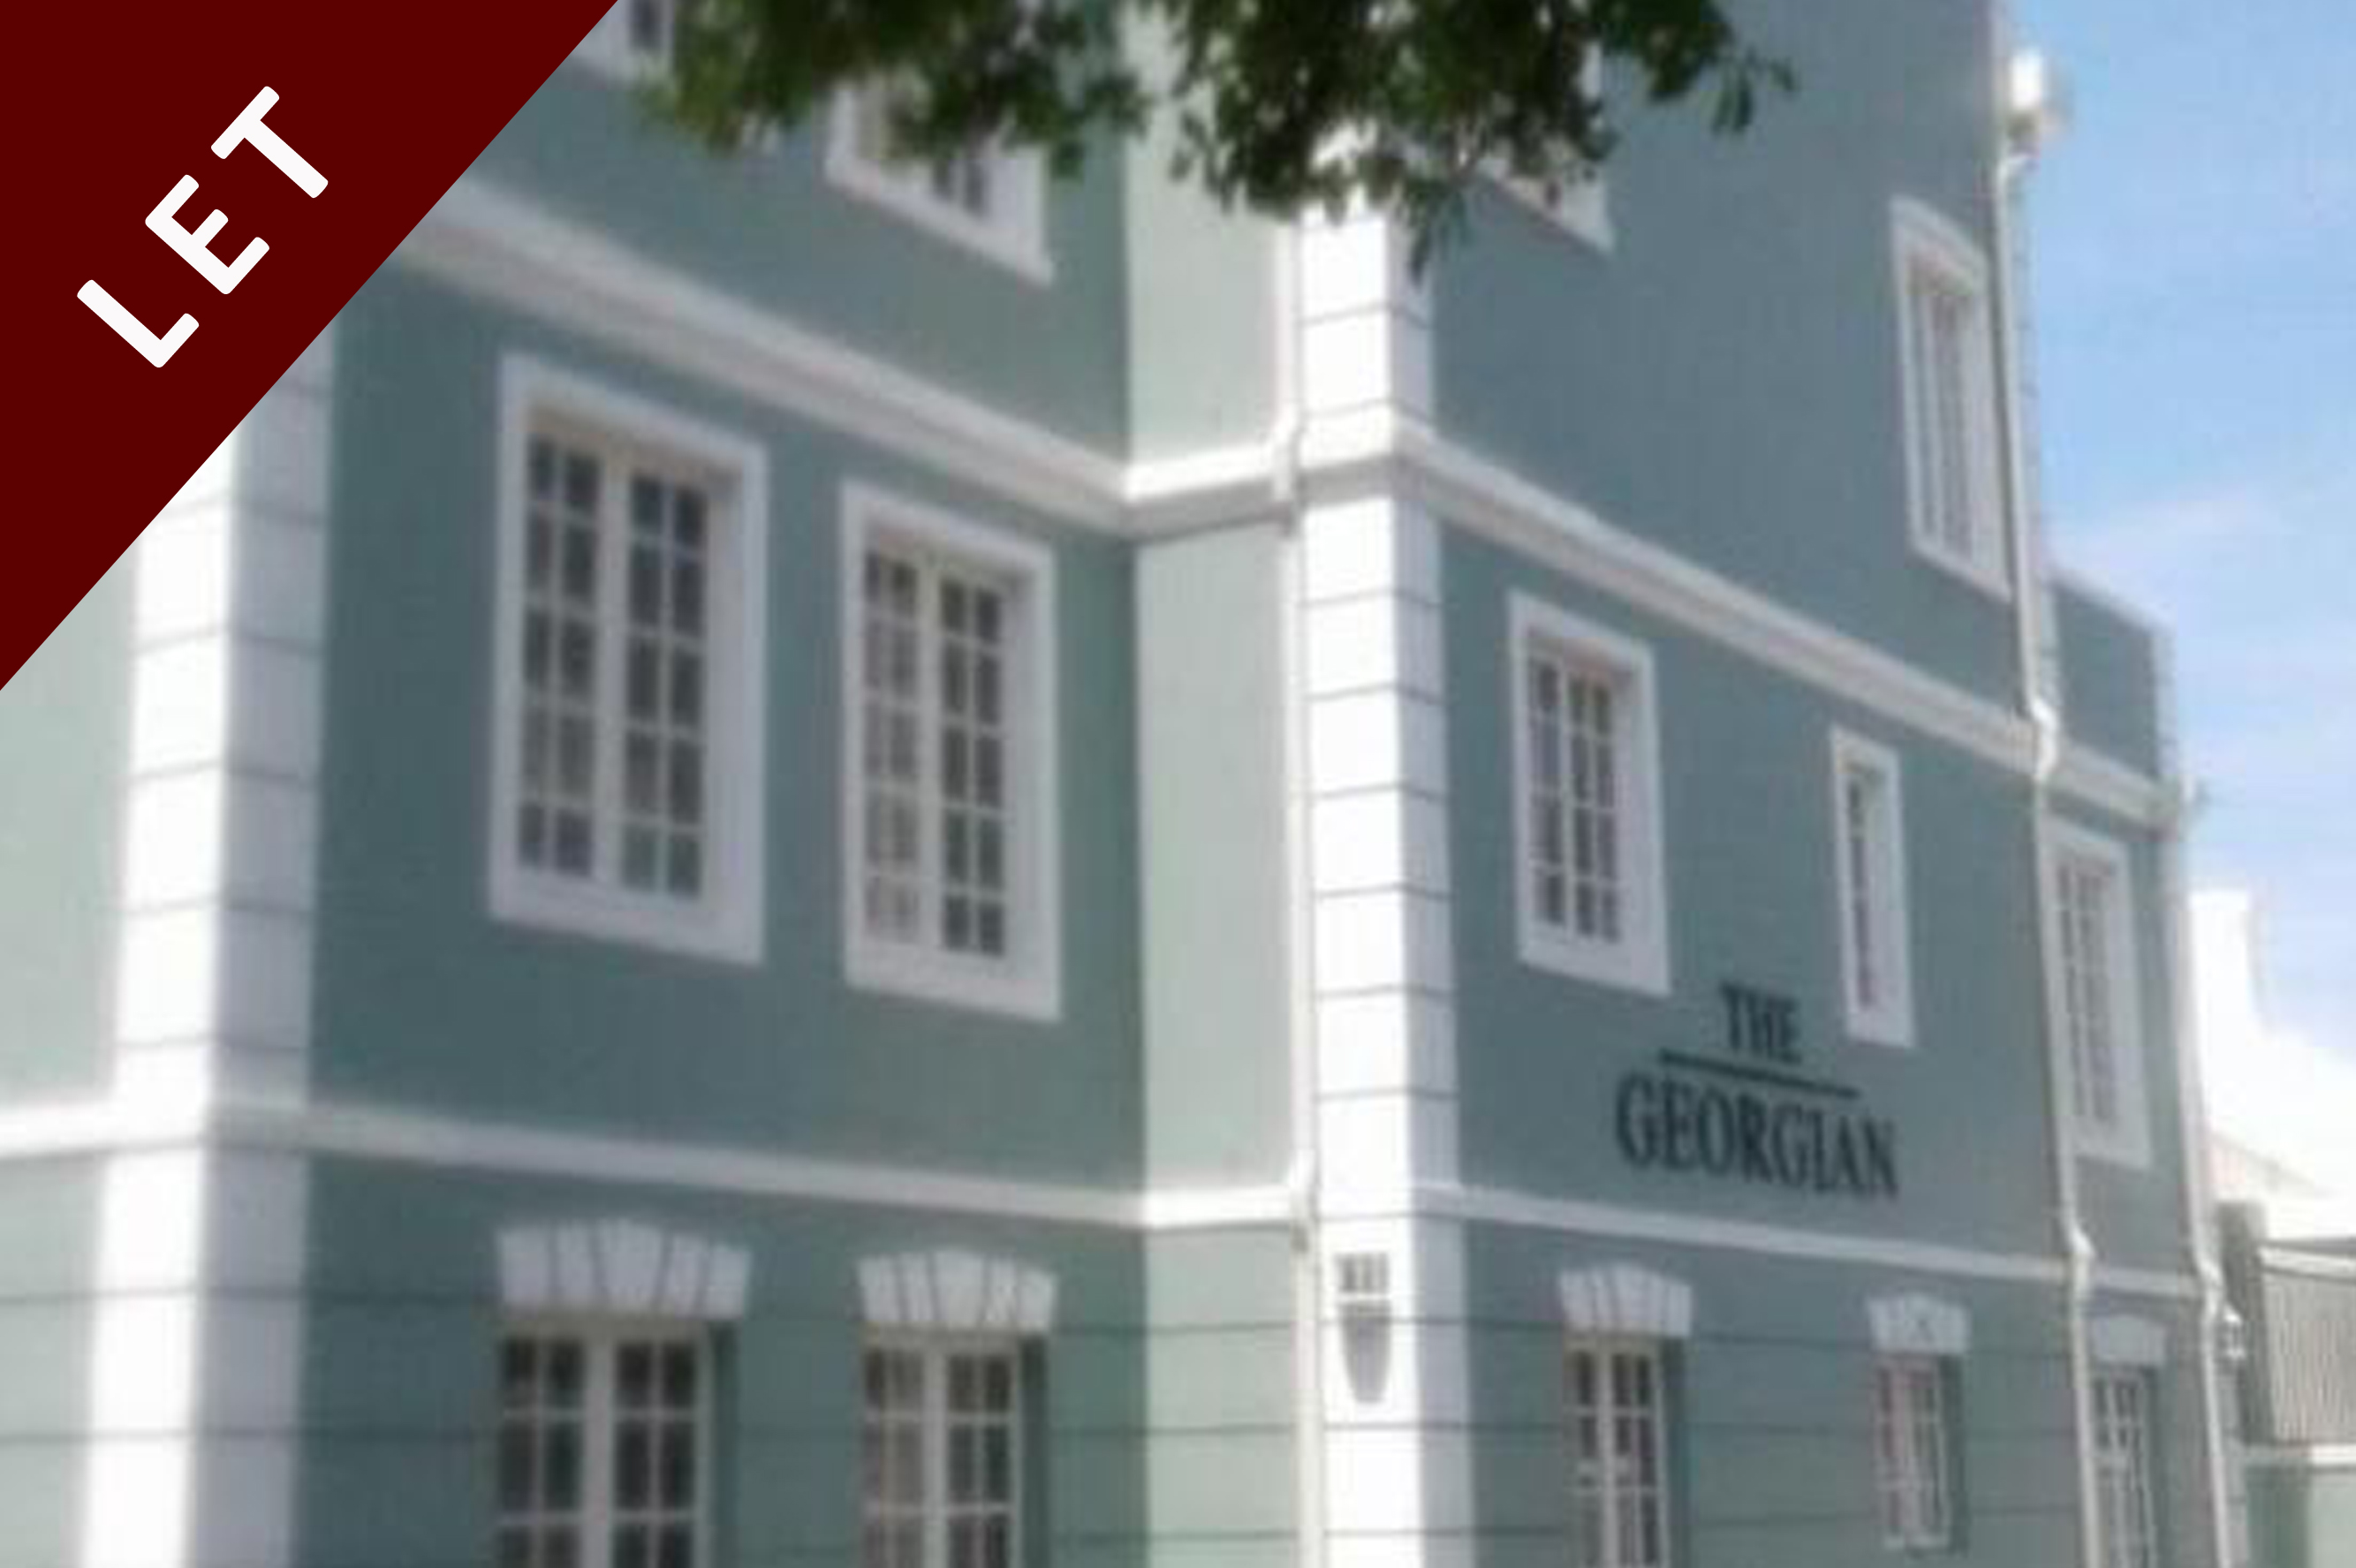 Let R 9 000 2 Bedroom Apartment Flat To Rent In Wynberg The Georgian 5 Mortimer Road